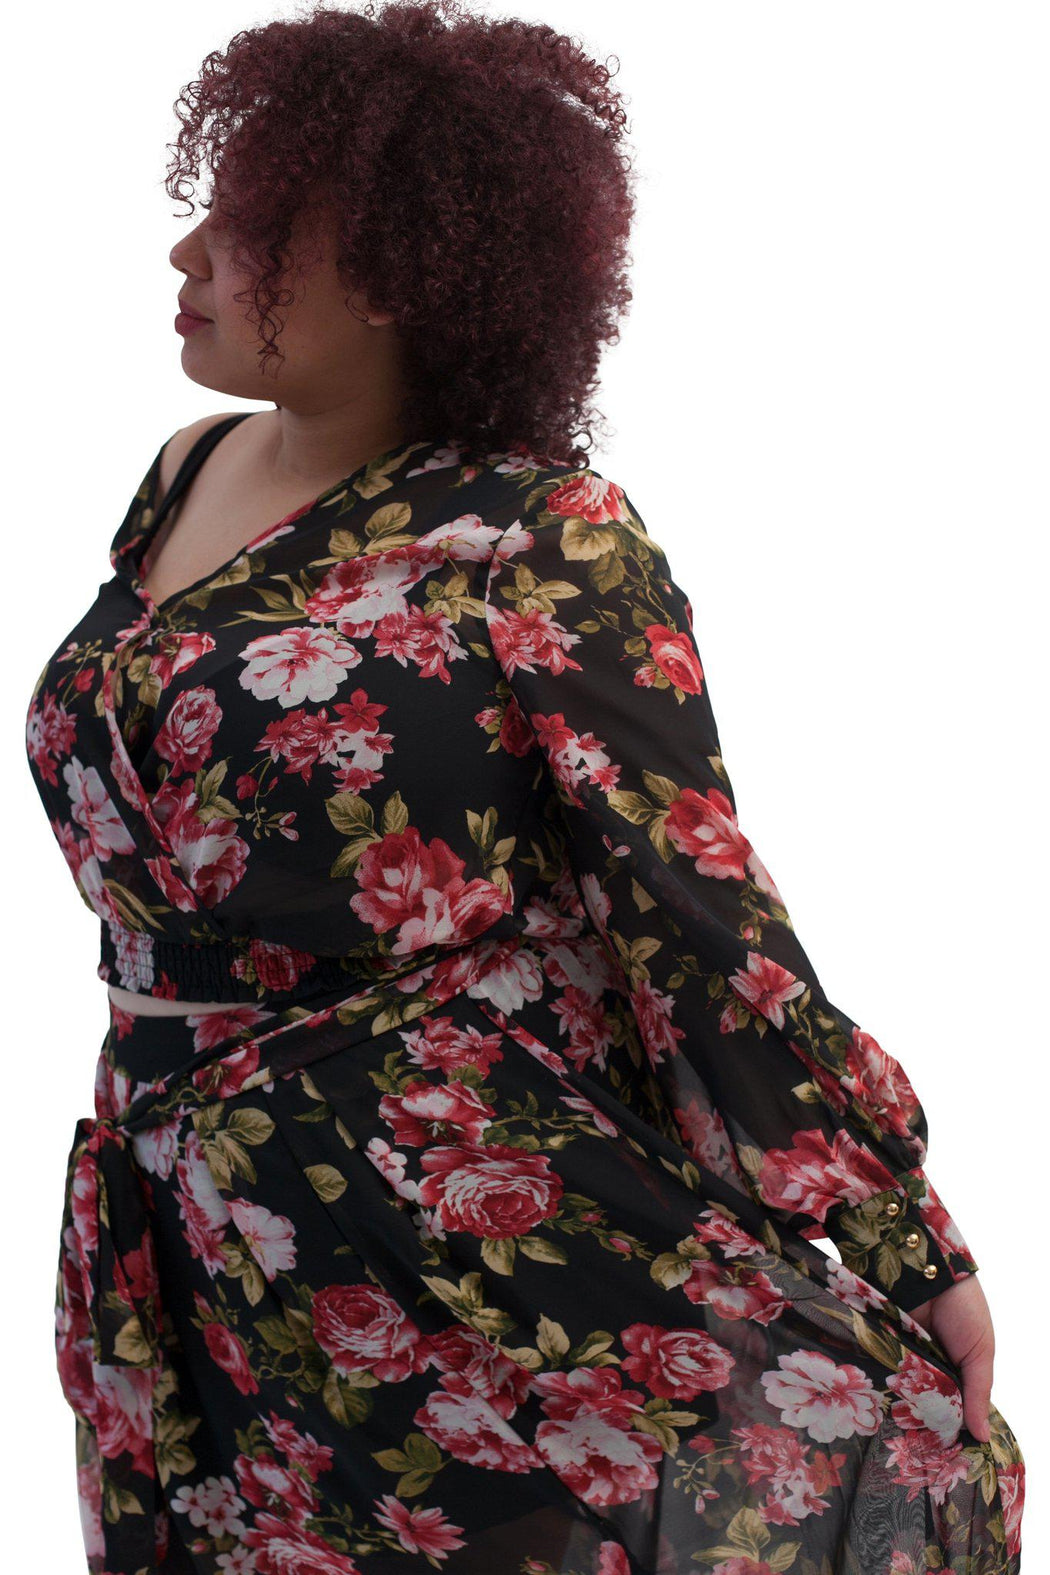 PRIMROSE black floral chiffon blouse side view